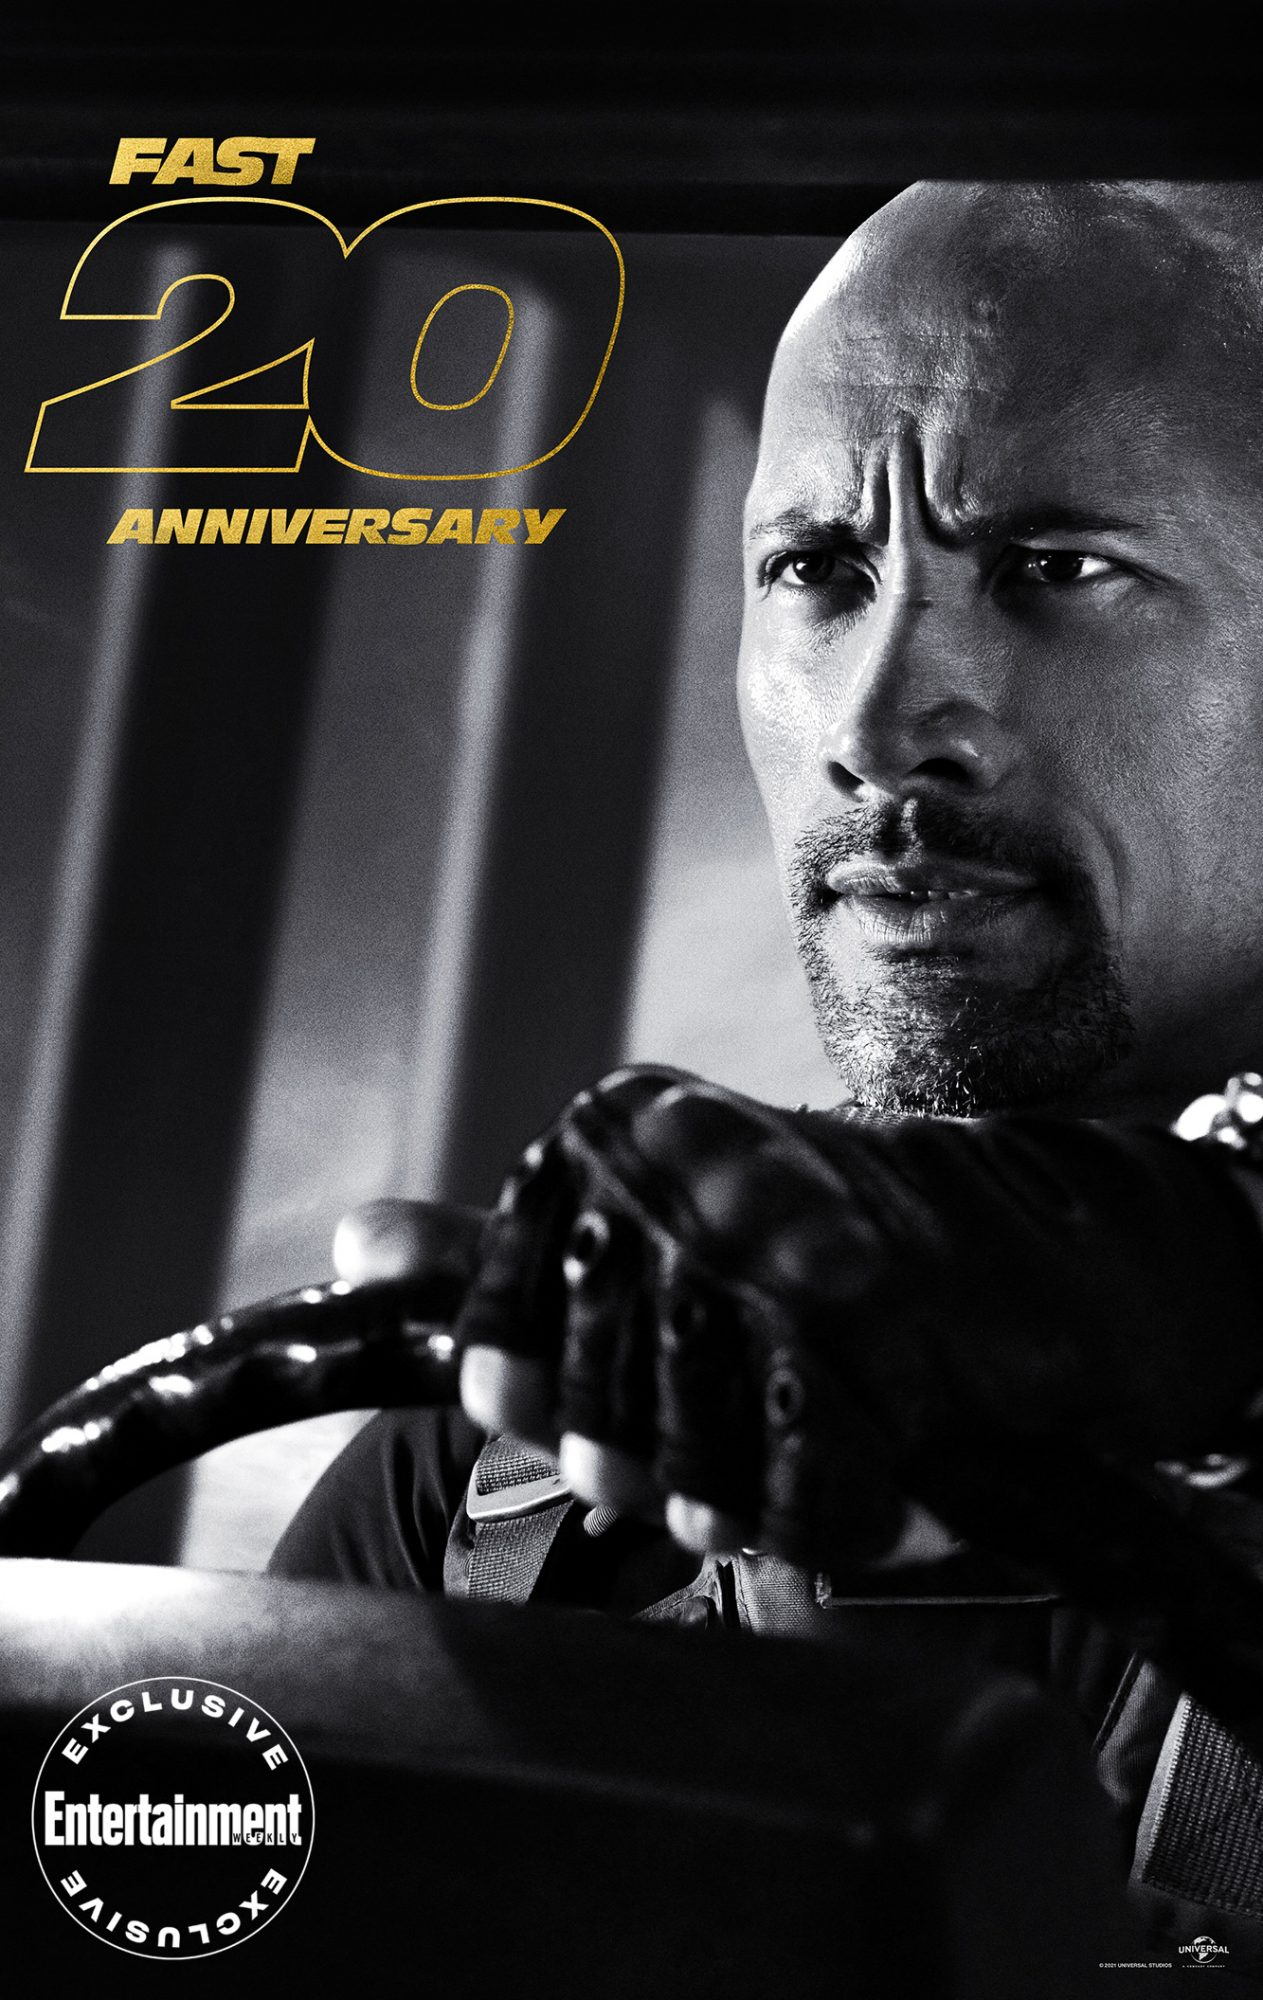 Fast and Furious 20th anniversary posters